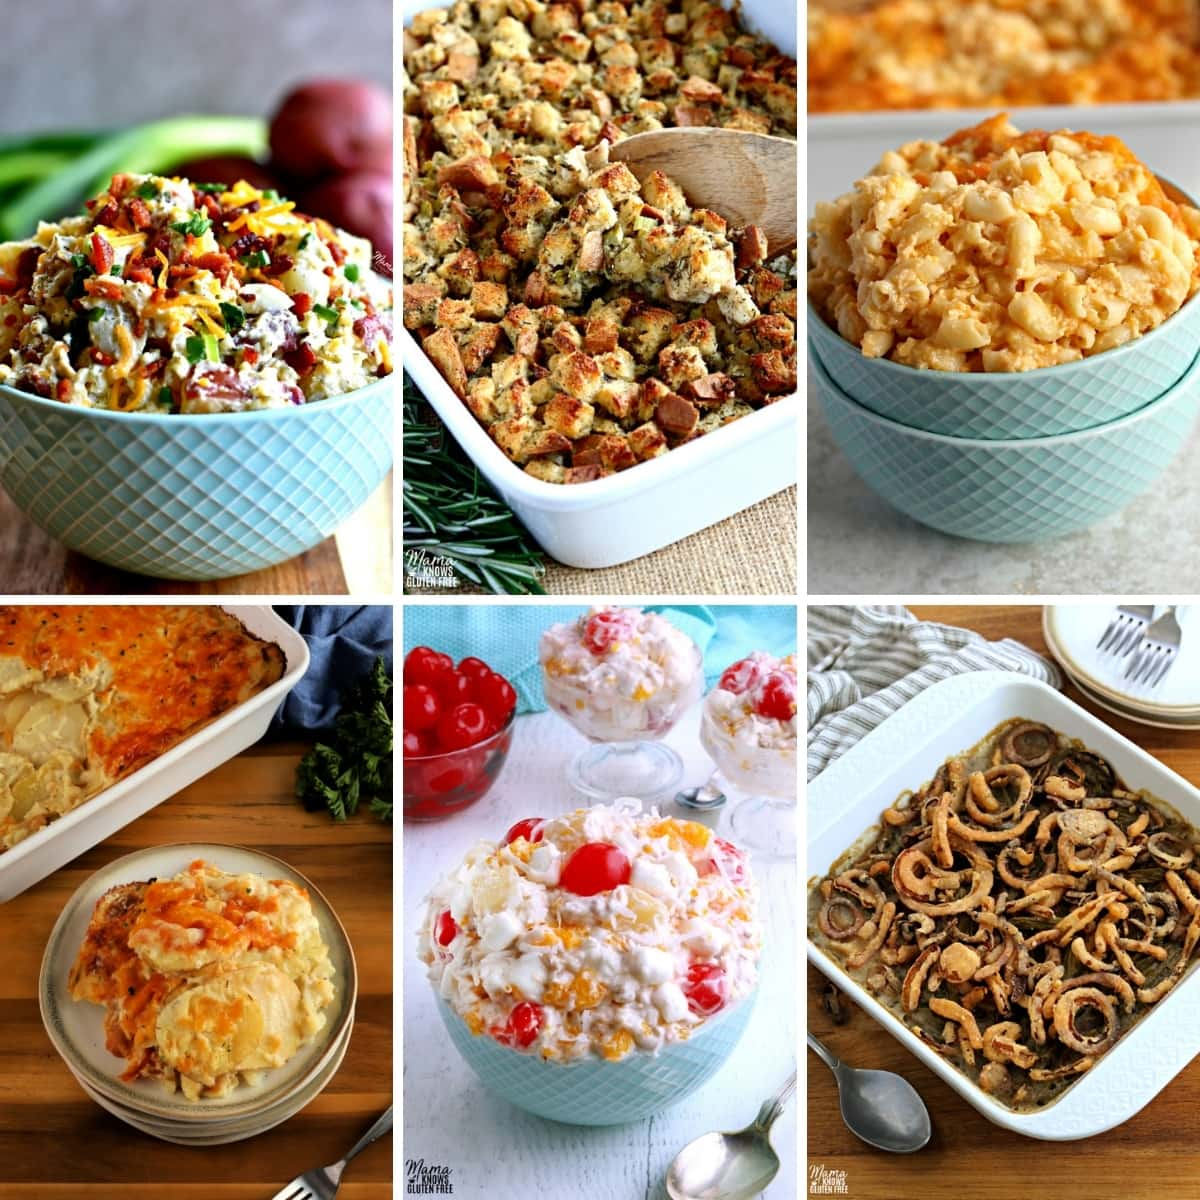 gluten-free Easter side dish recipes photo collage